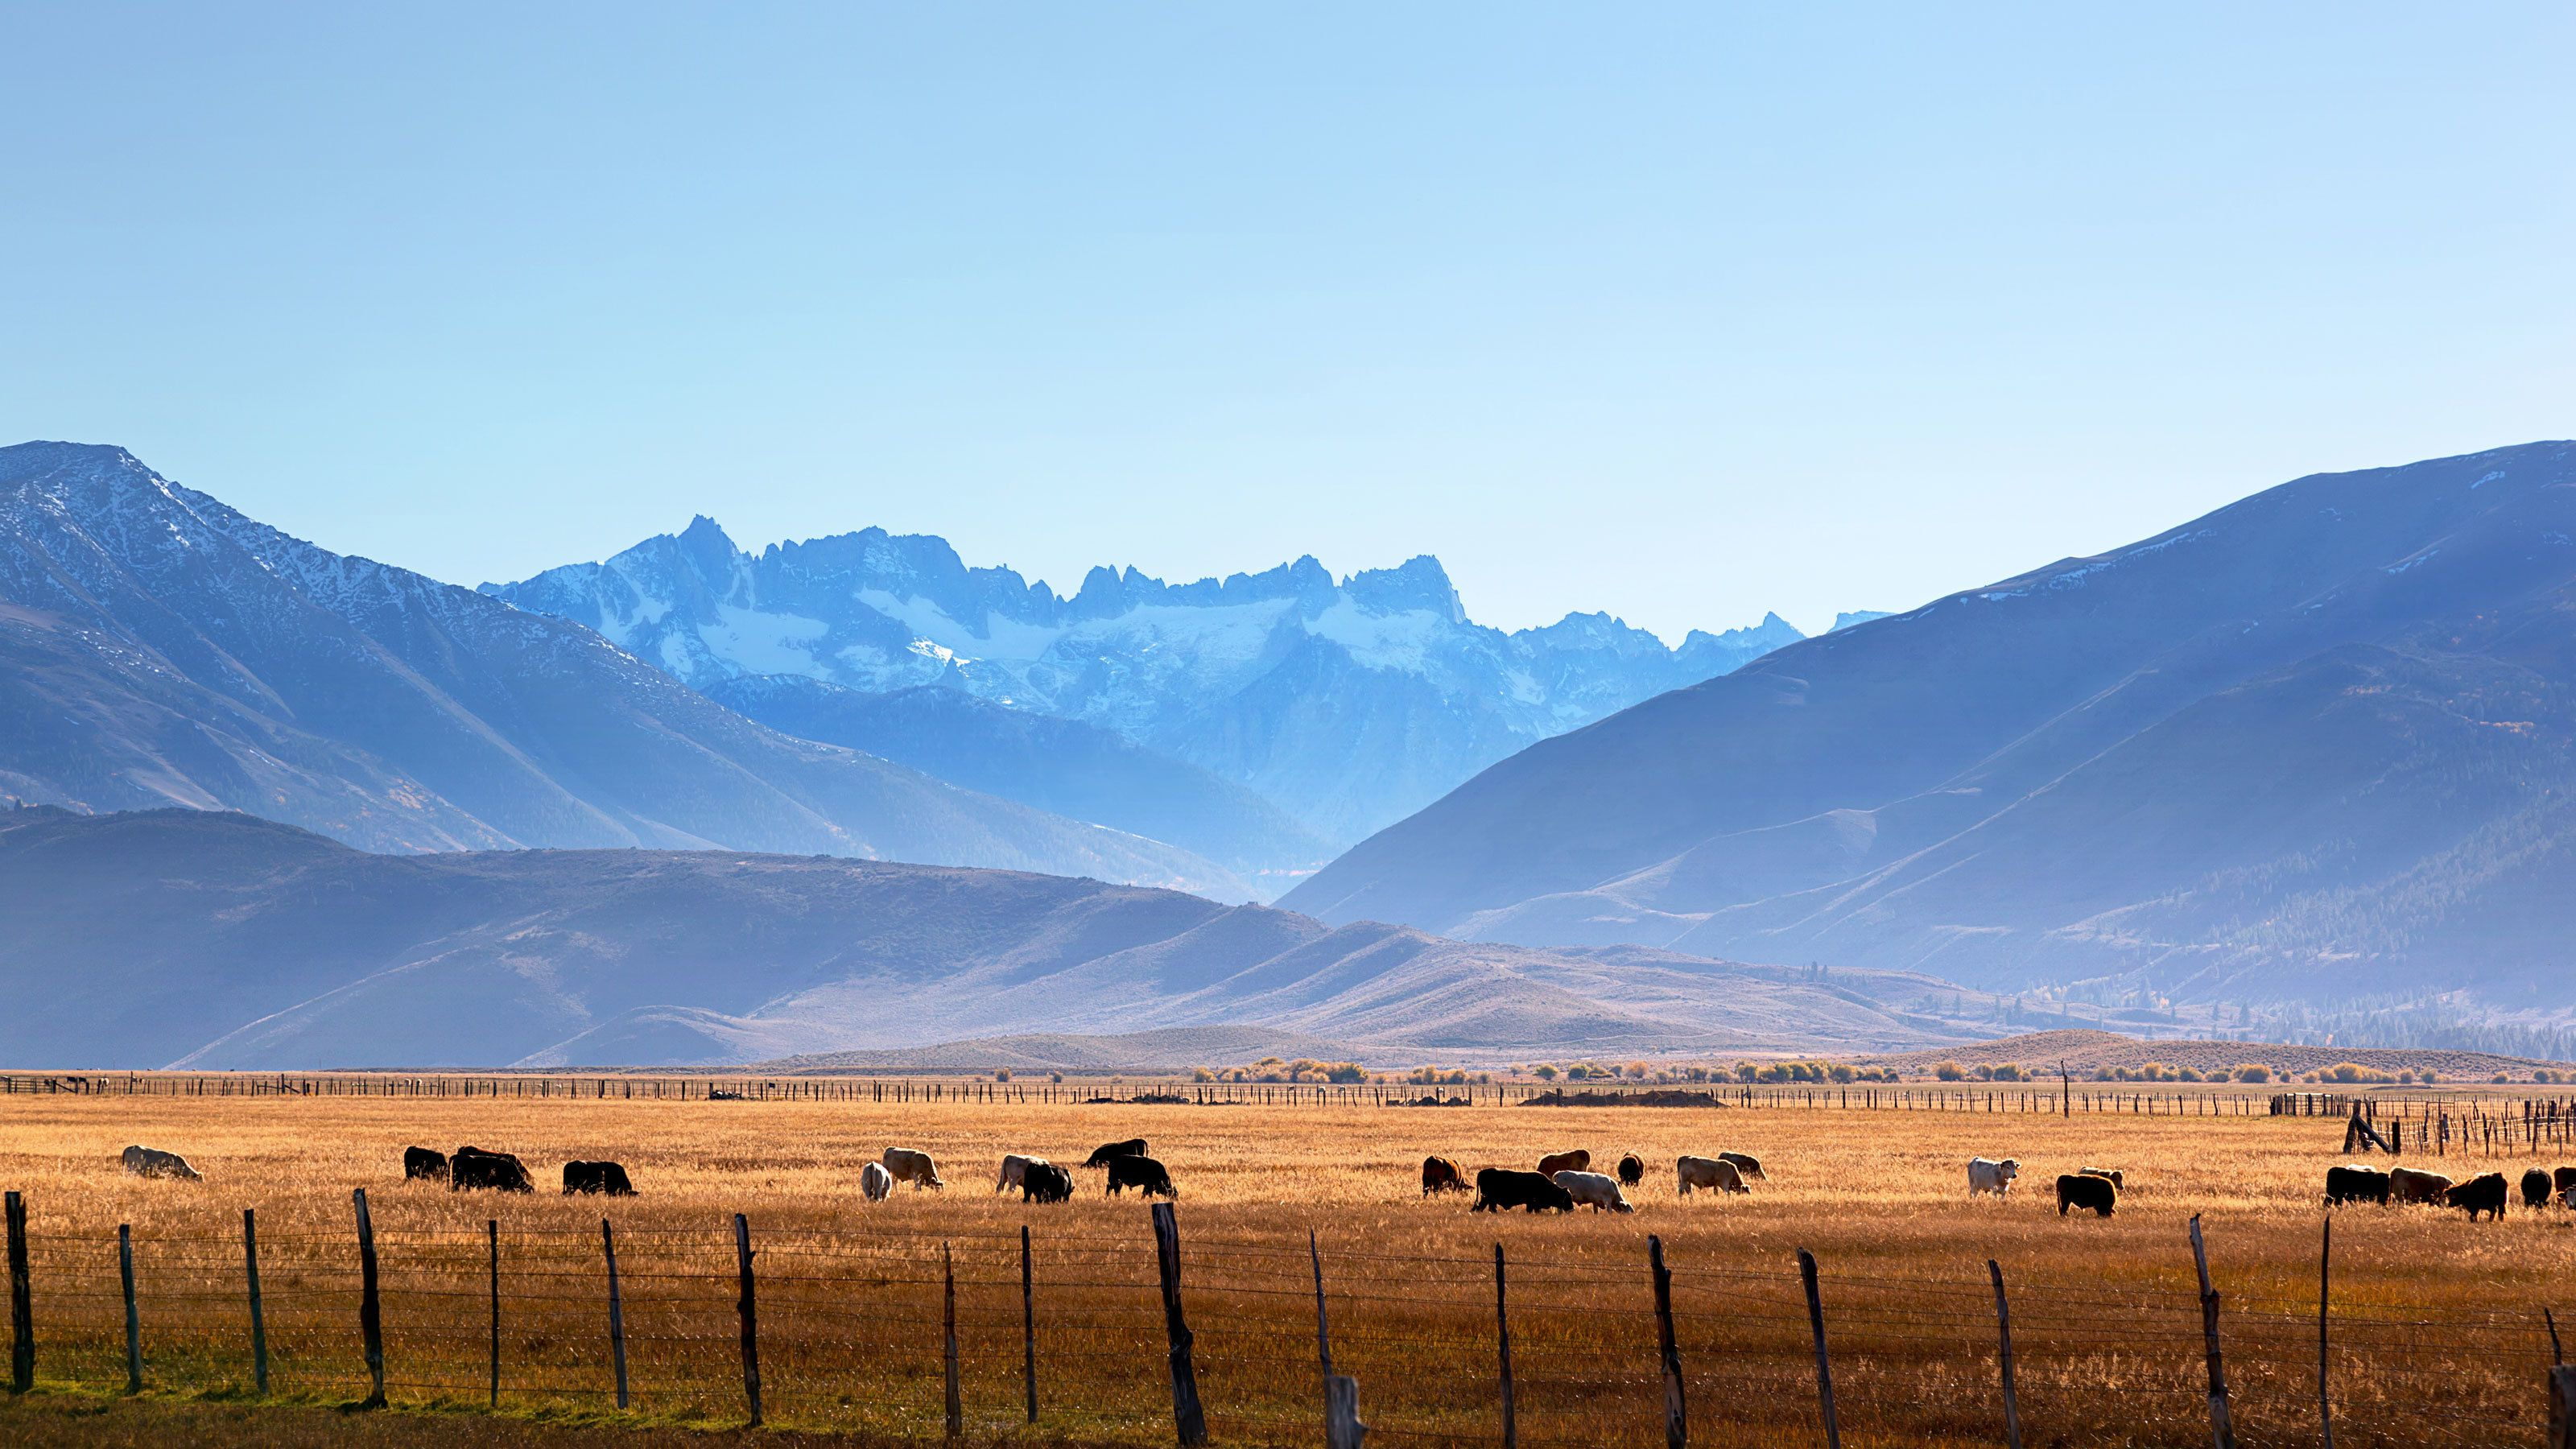 Mountains and cows grazing in a field in Utah.